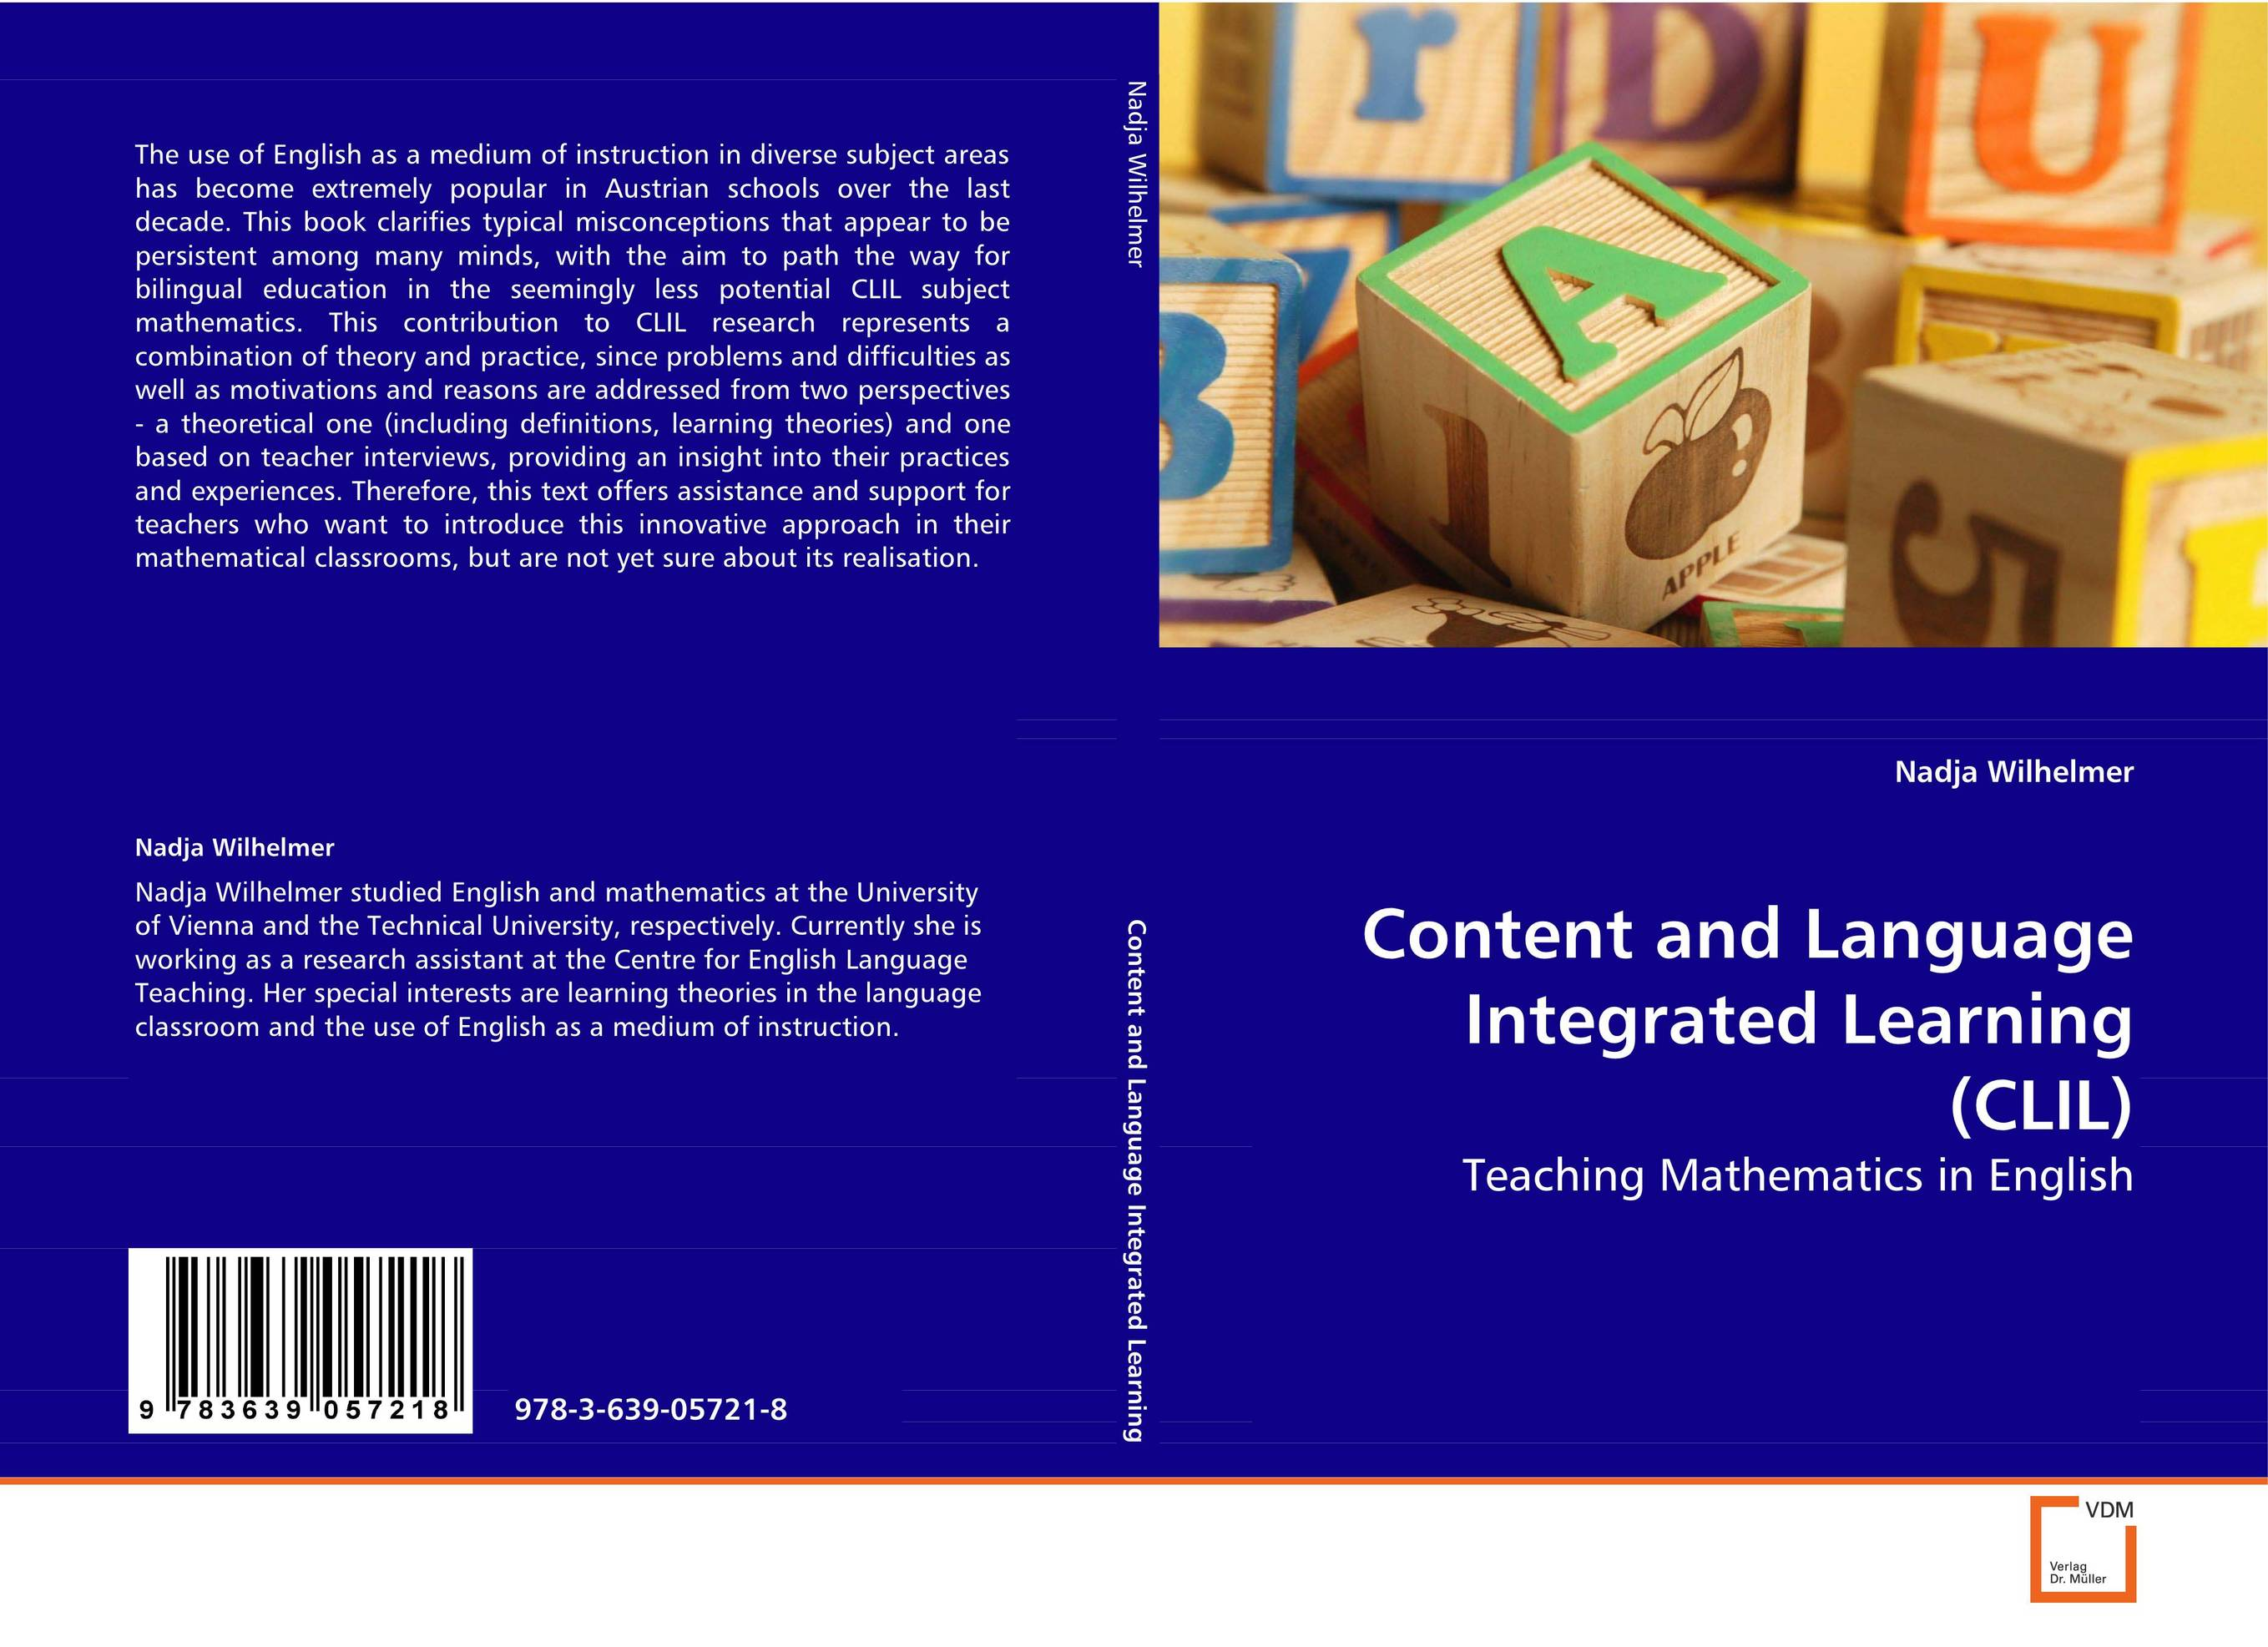 Content and Language Integrated Learning (CLIL) learner autonomy and web based language learning wbll